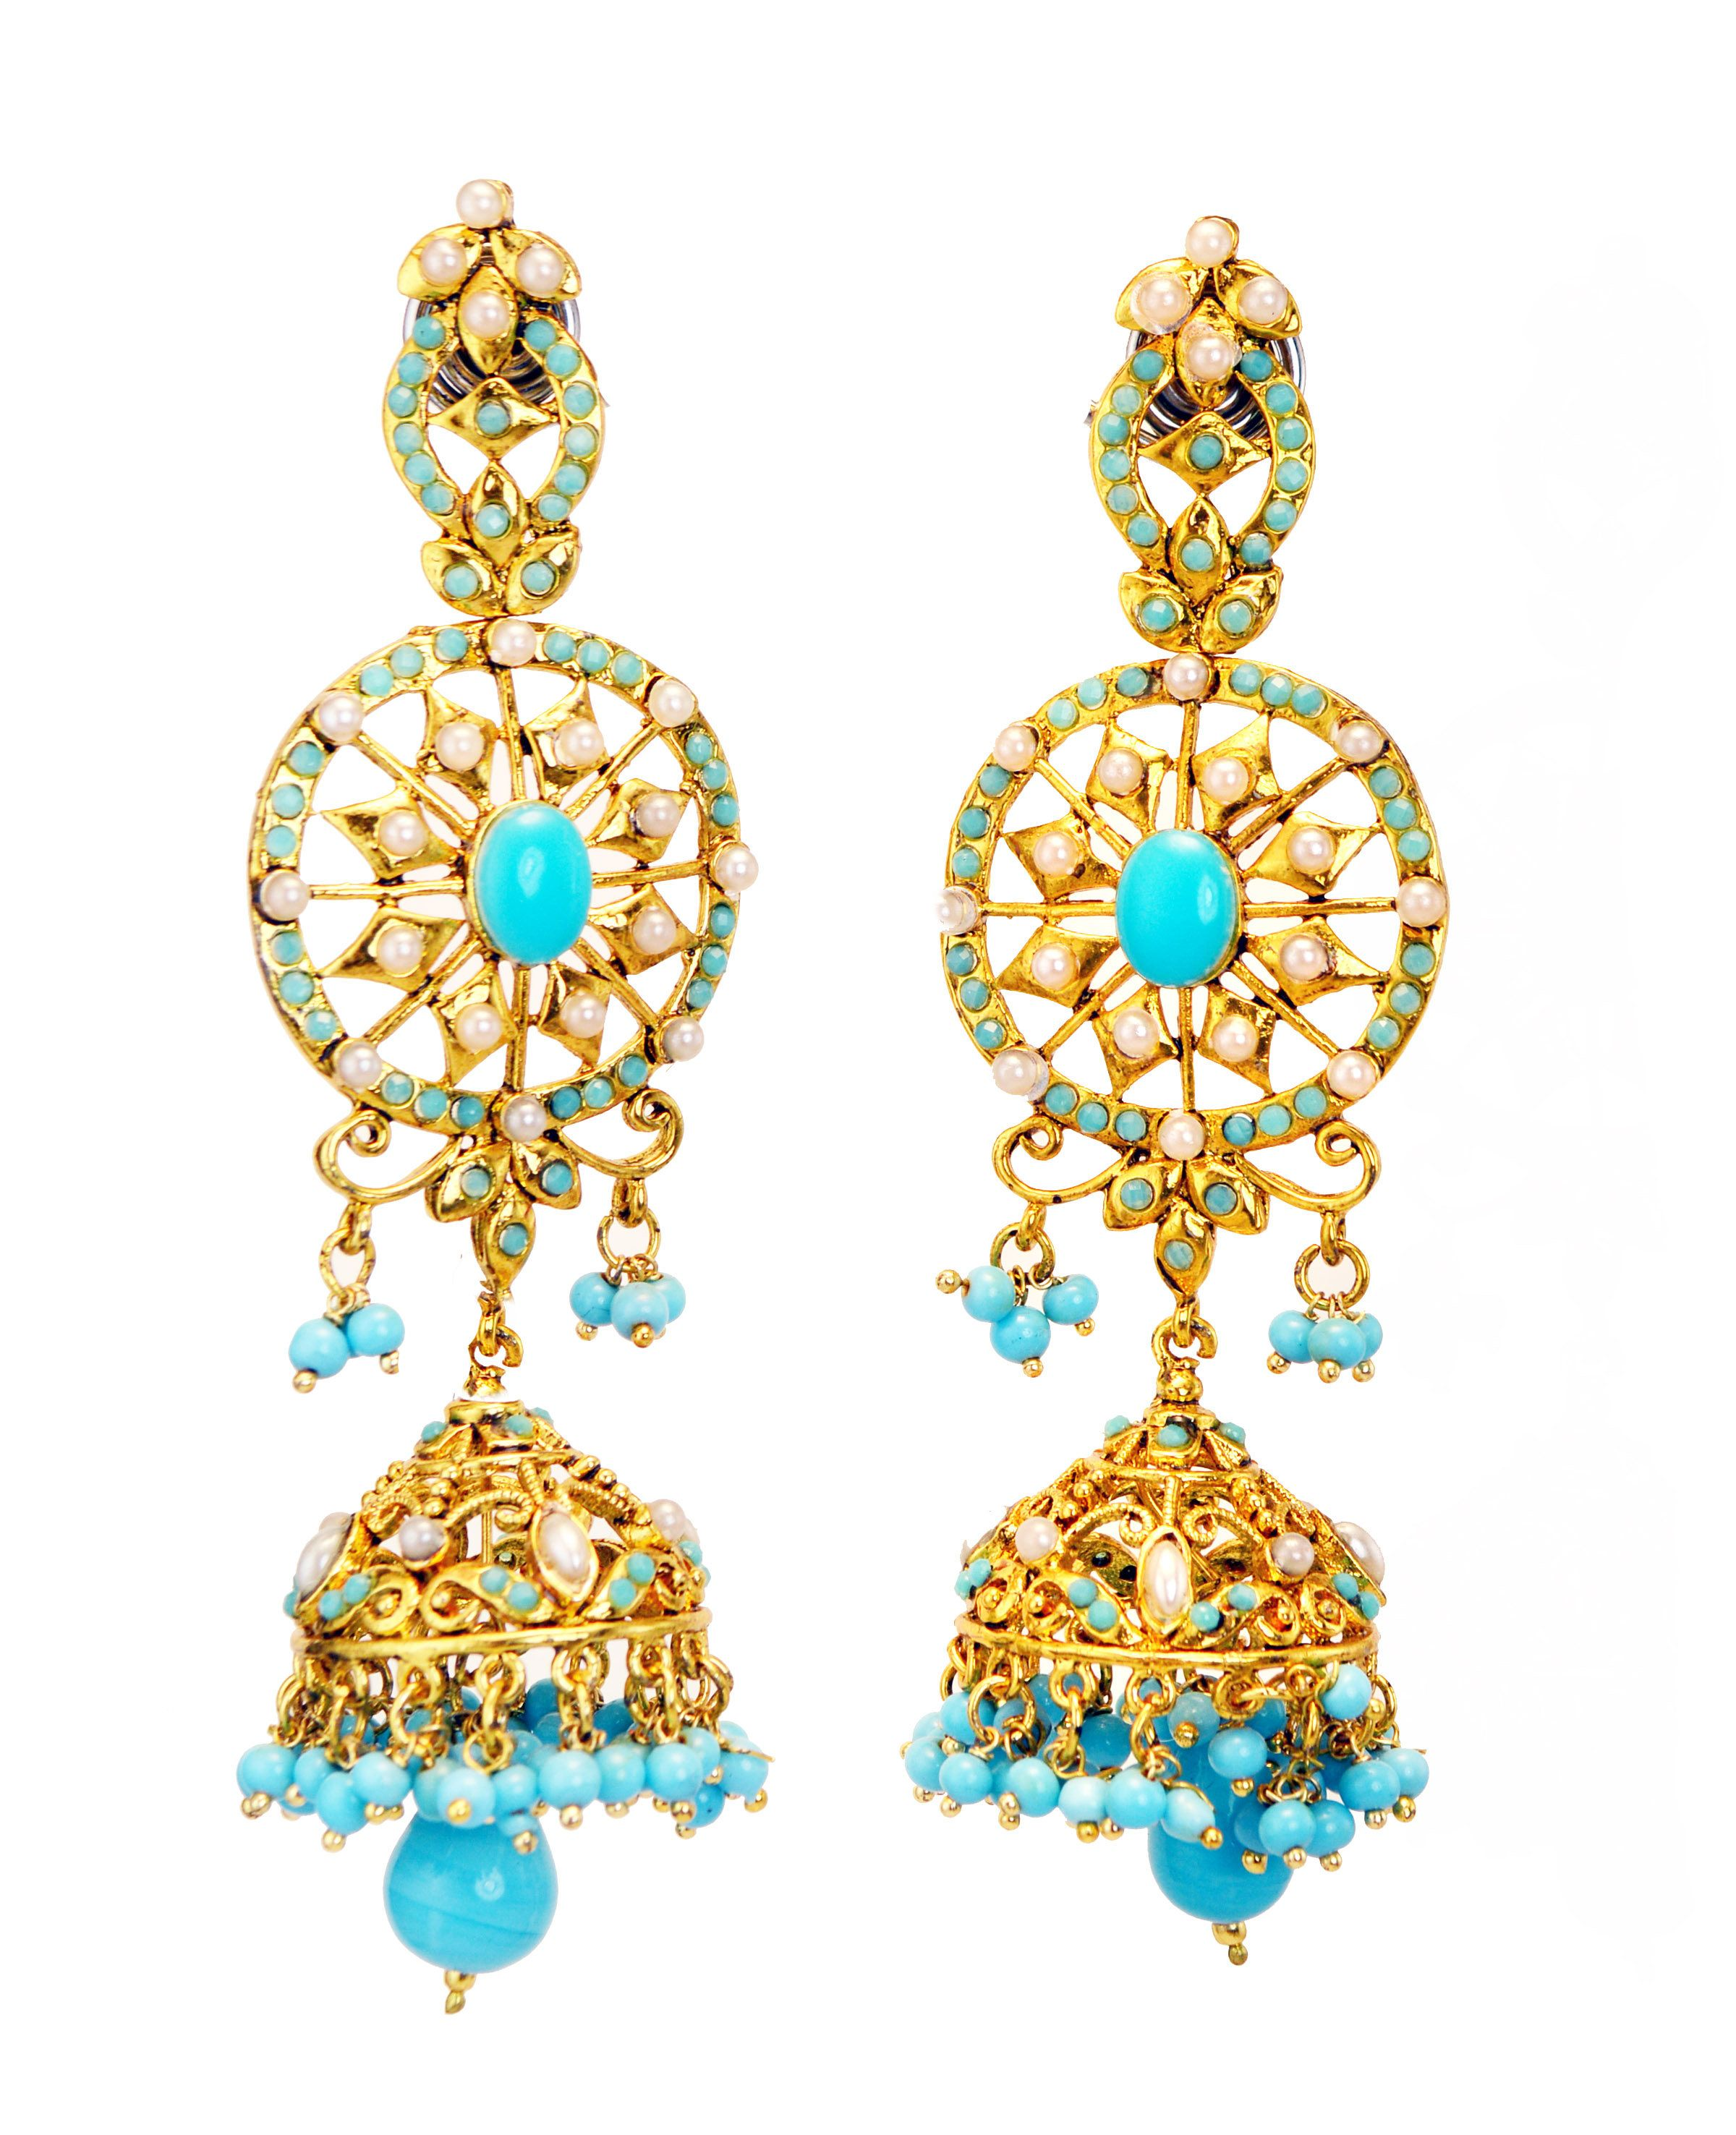 Hair & Head Jewellery Jewellery & Watches Sunny Indian Bollywood Gold Plated Blue Kundan Meenakari Earring Women Wedding Jewelr Soft And Light